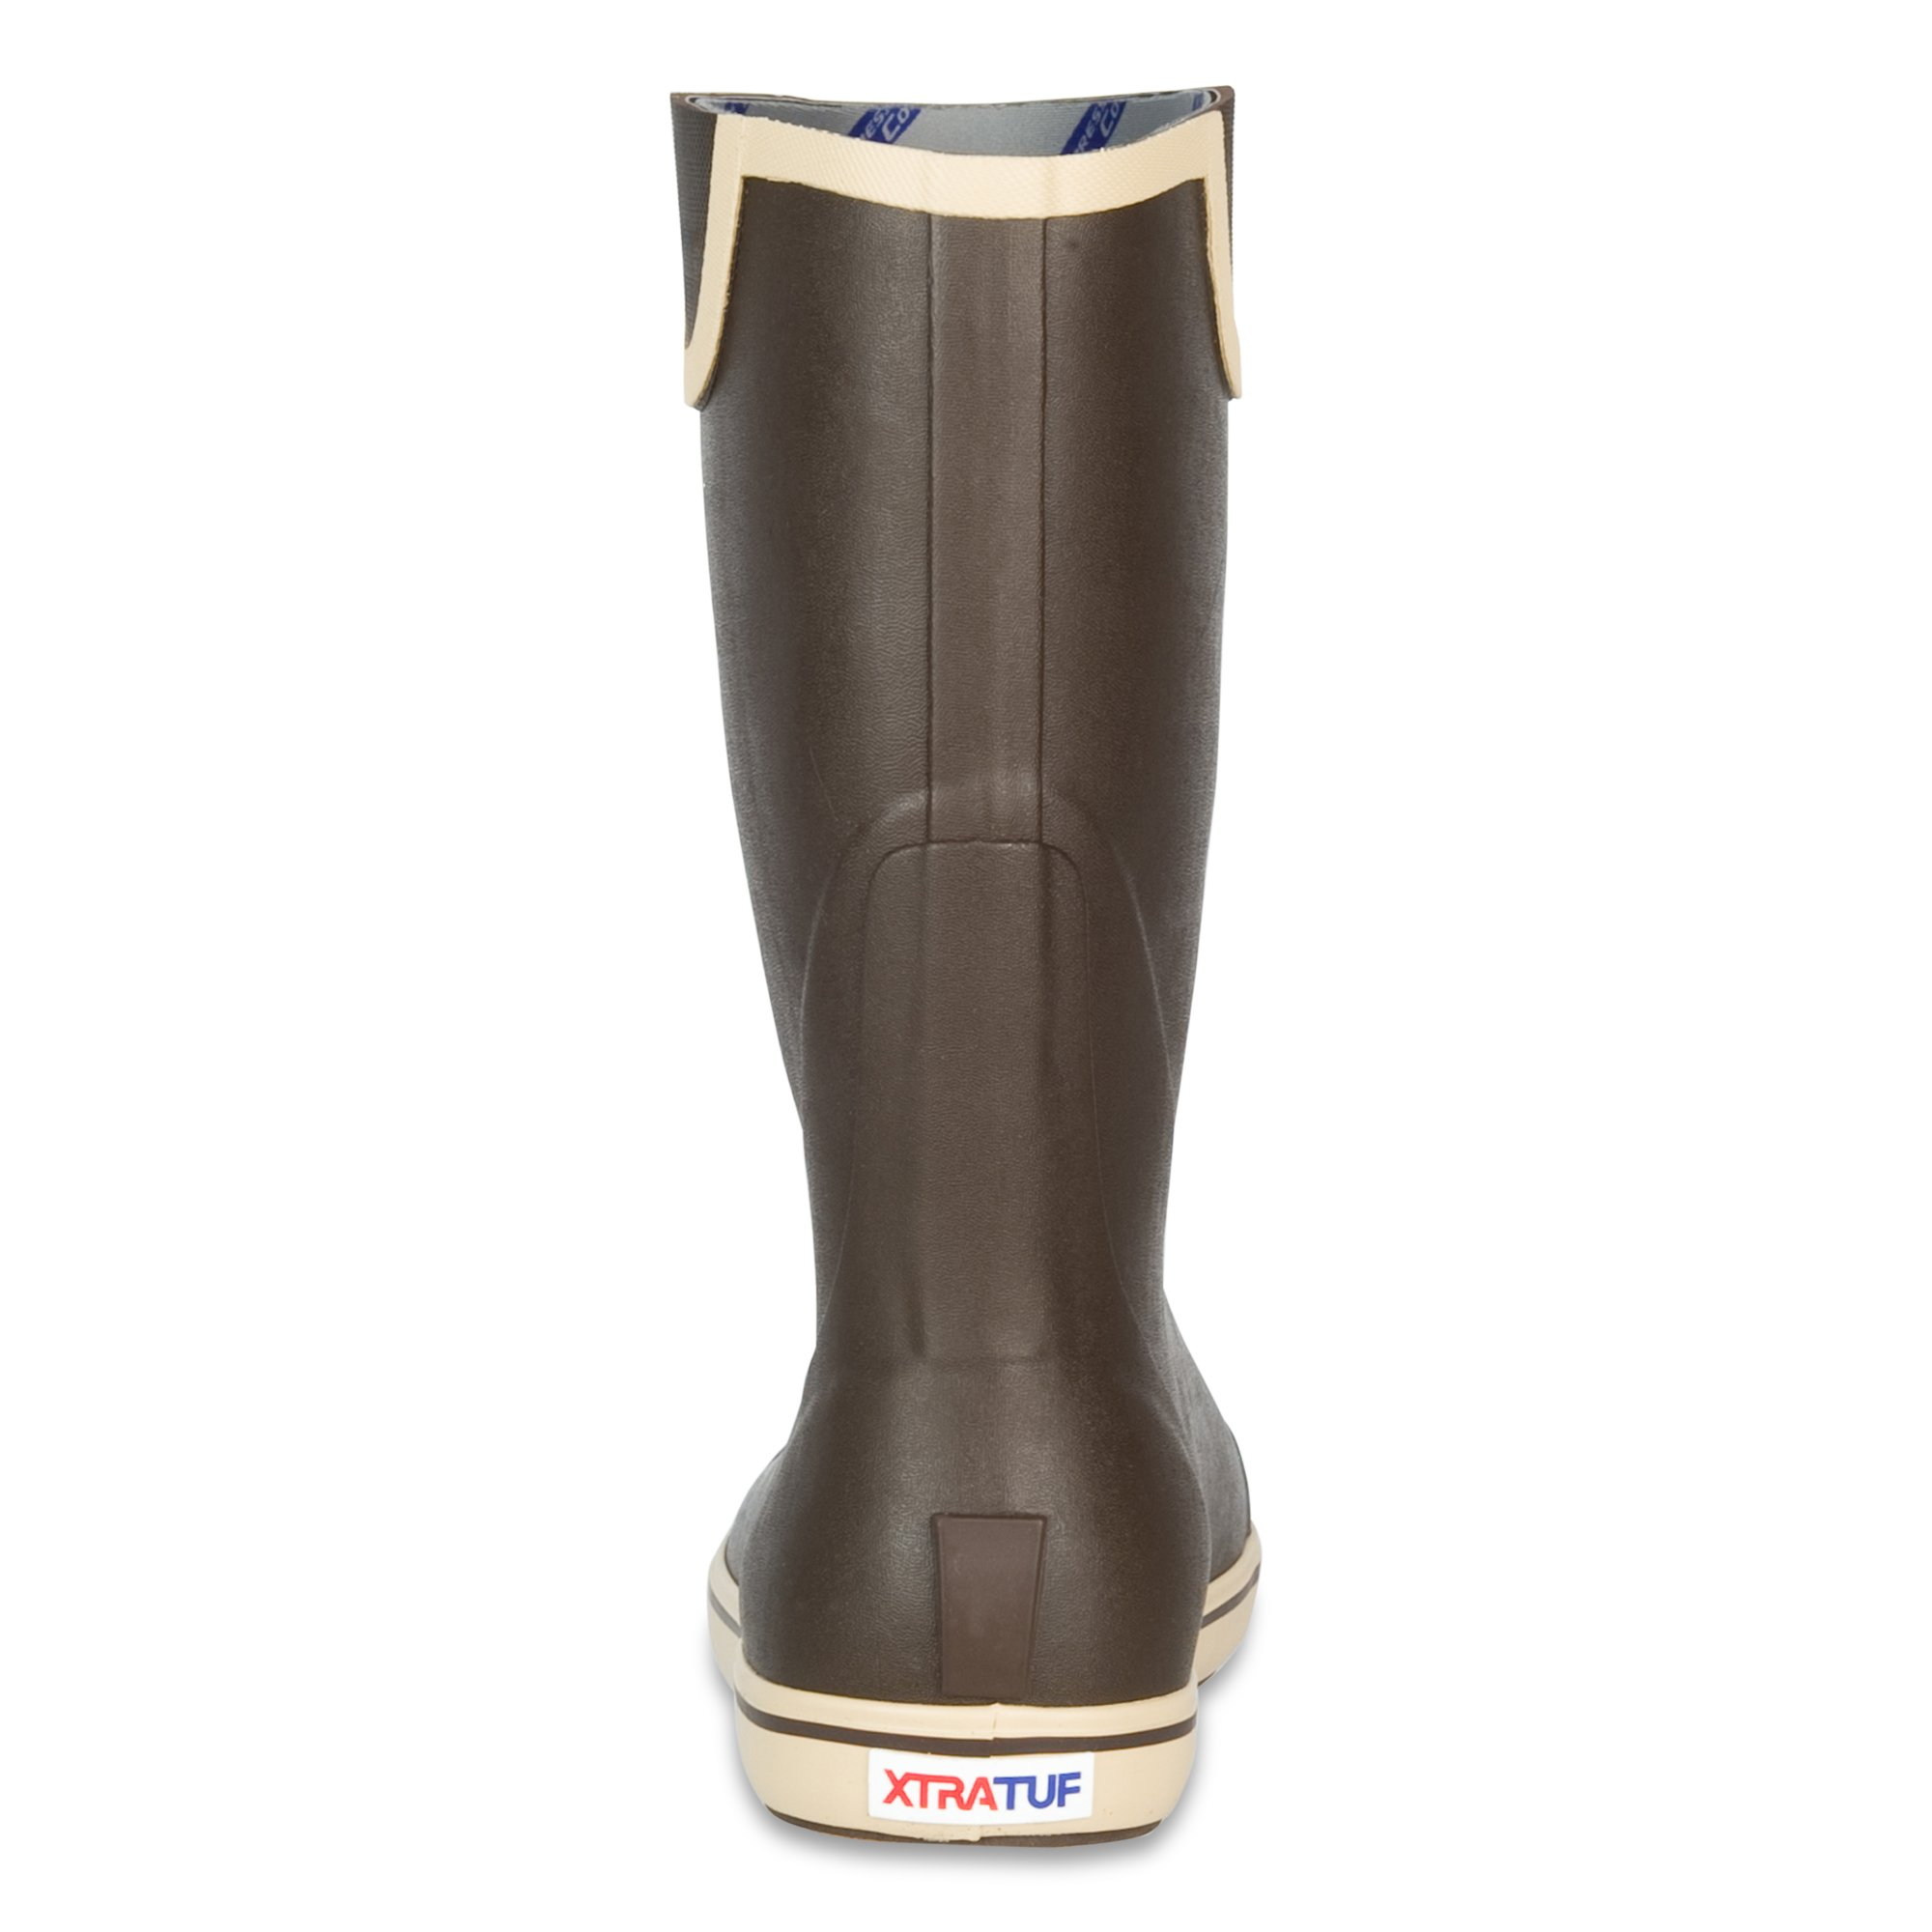 XTRATUF Performance Series 12'' Men's Full Rubber Deck Boots, Chocolate & Tan (22702) by Xtratuf (Image #3)